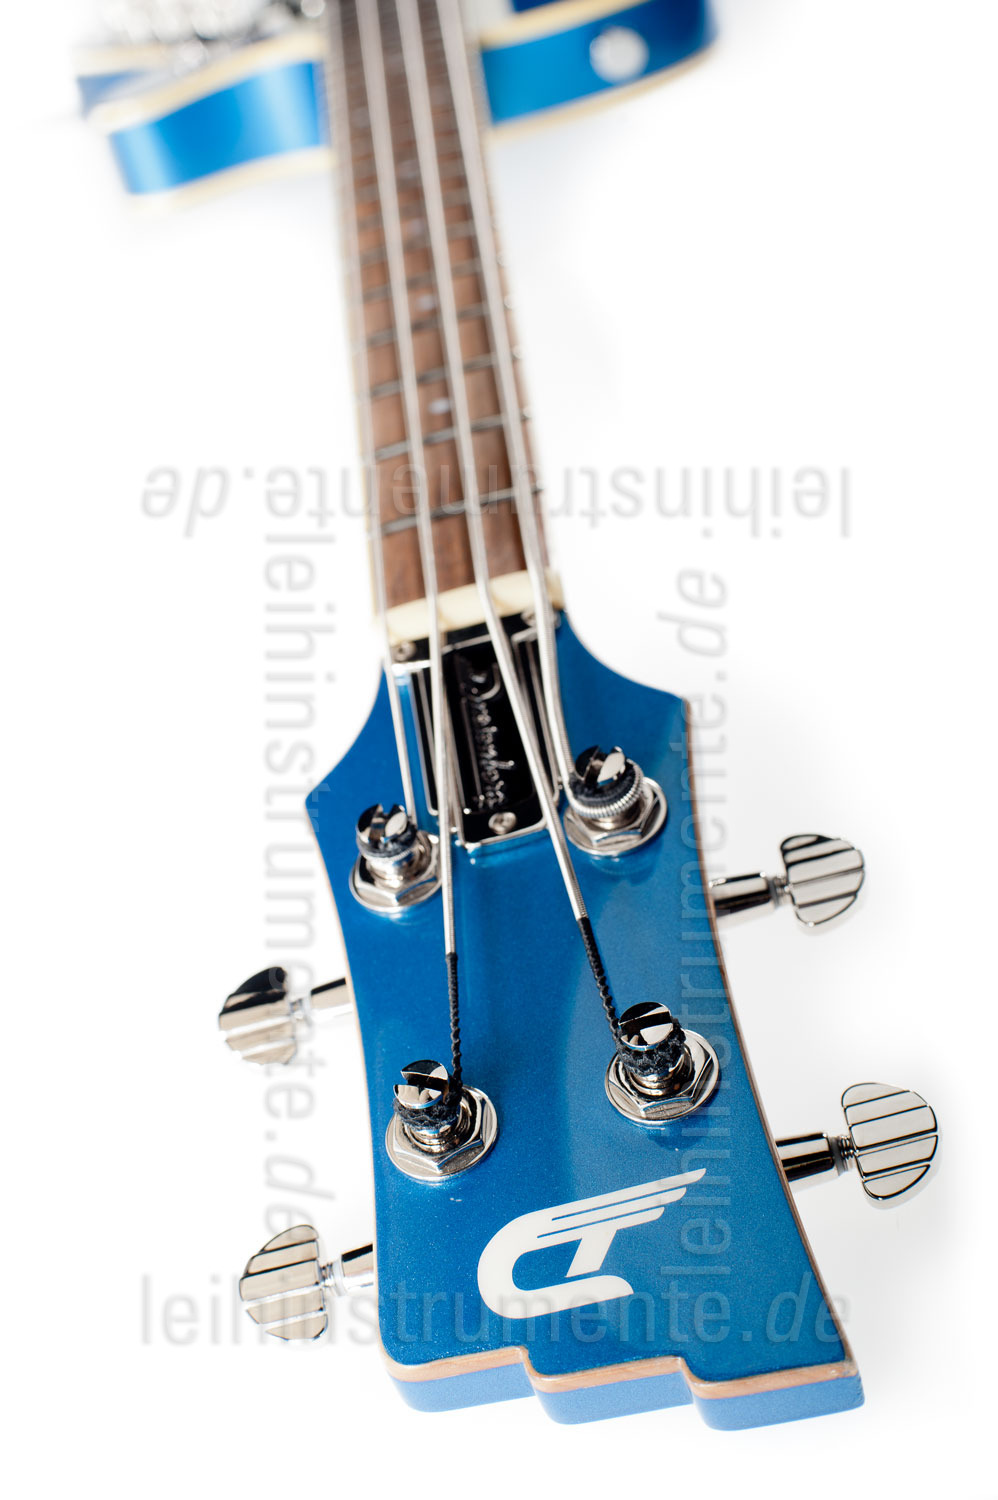 zur Artikelbeschreibung / Preis E-Bass - DUESENBERG STARPLAYER BASS - MIKE CAMPBELL LTD + Custom Line Case